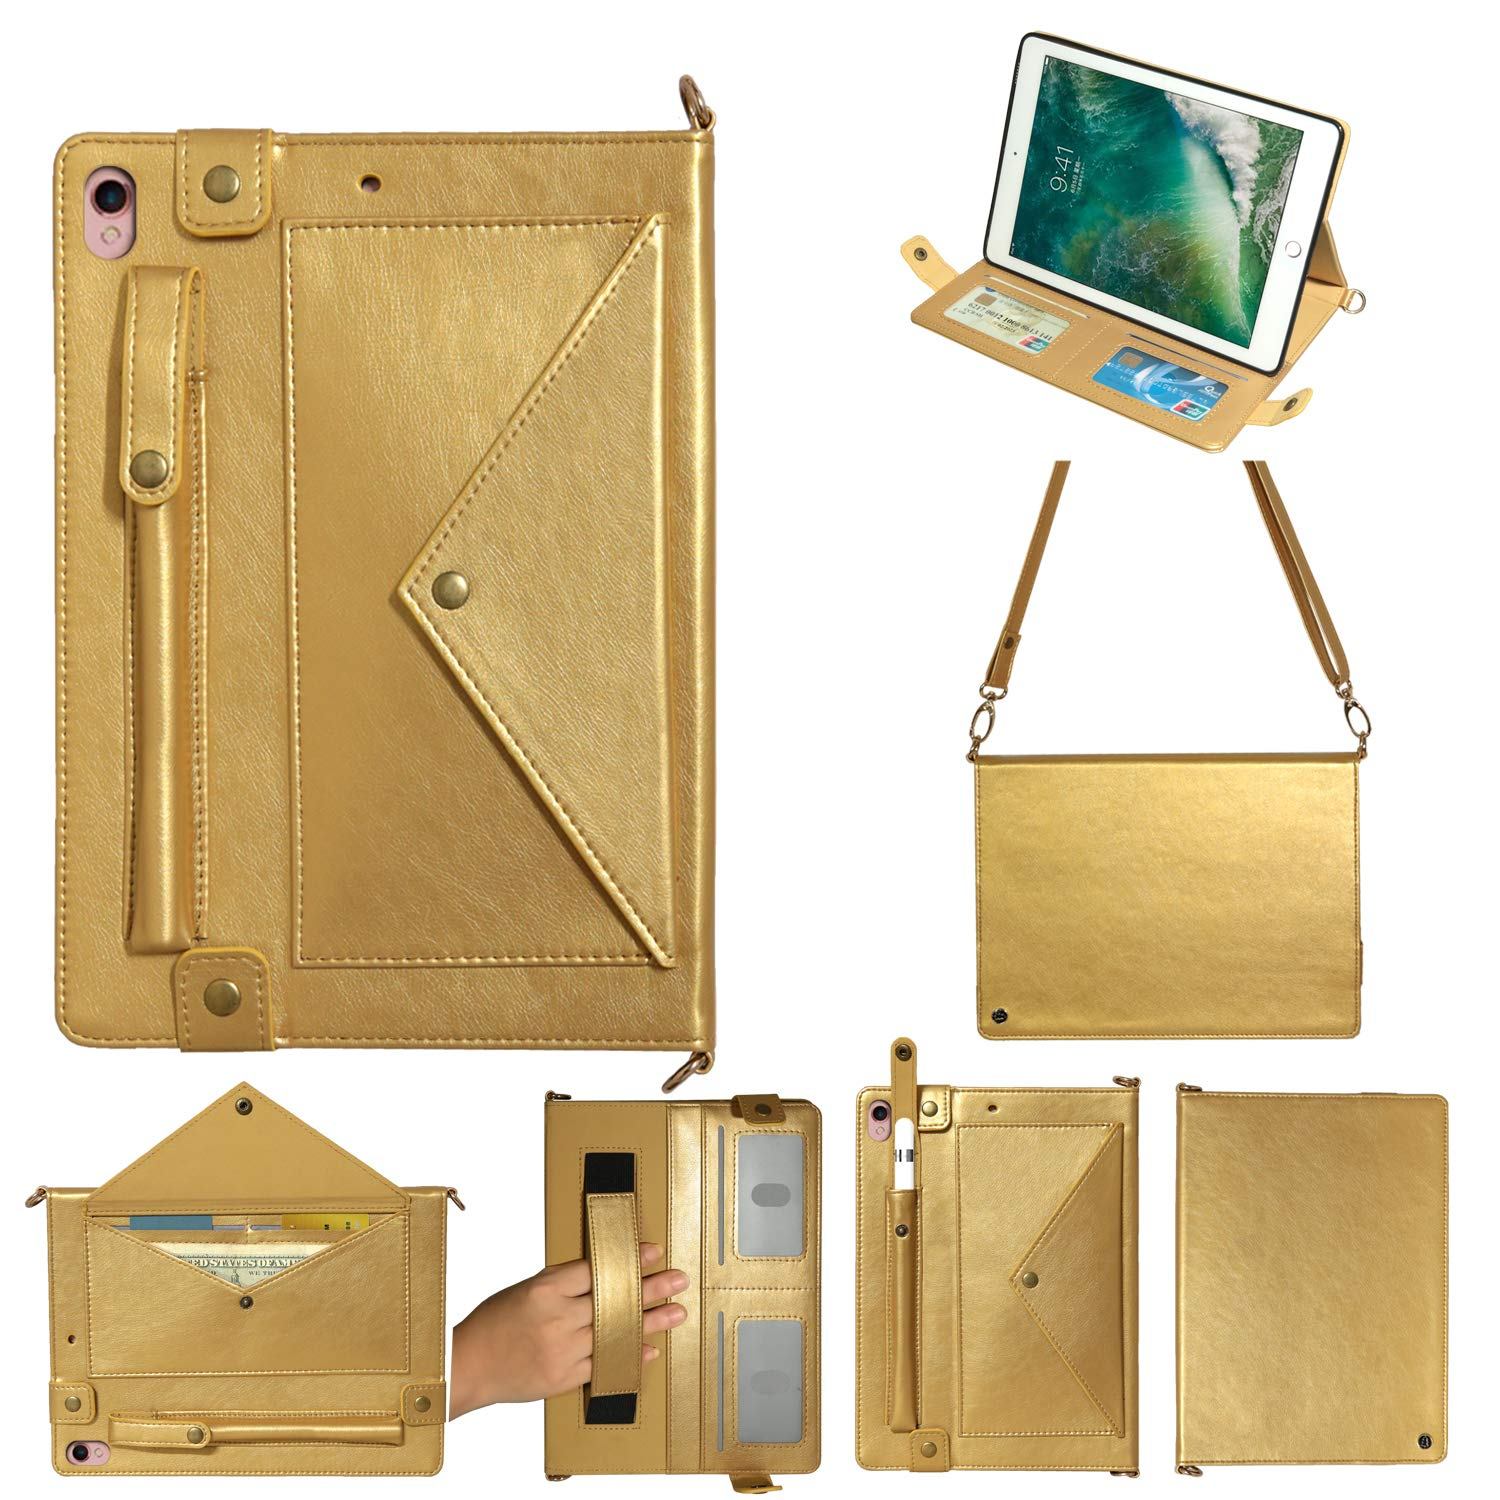 MeiLiio for iPad Pro 10.5' Case Wallet File Folio Pocket PU Leather Hangbag Shell with Hand Strap Protective Cover for iPad Air 3 Women&Girl (Gold) by MeiLiio